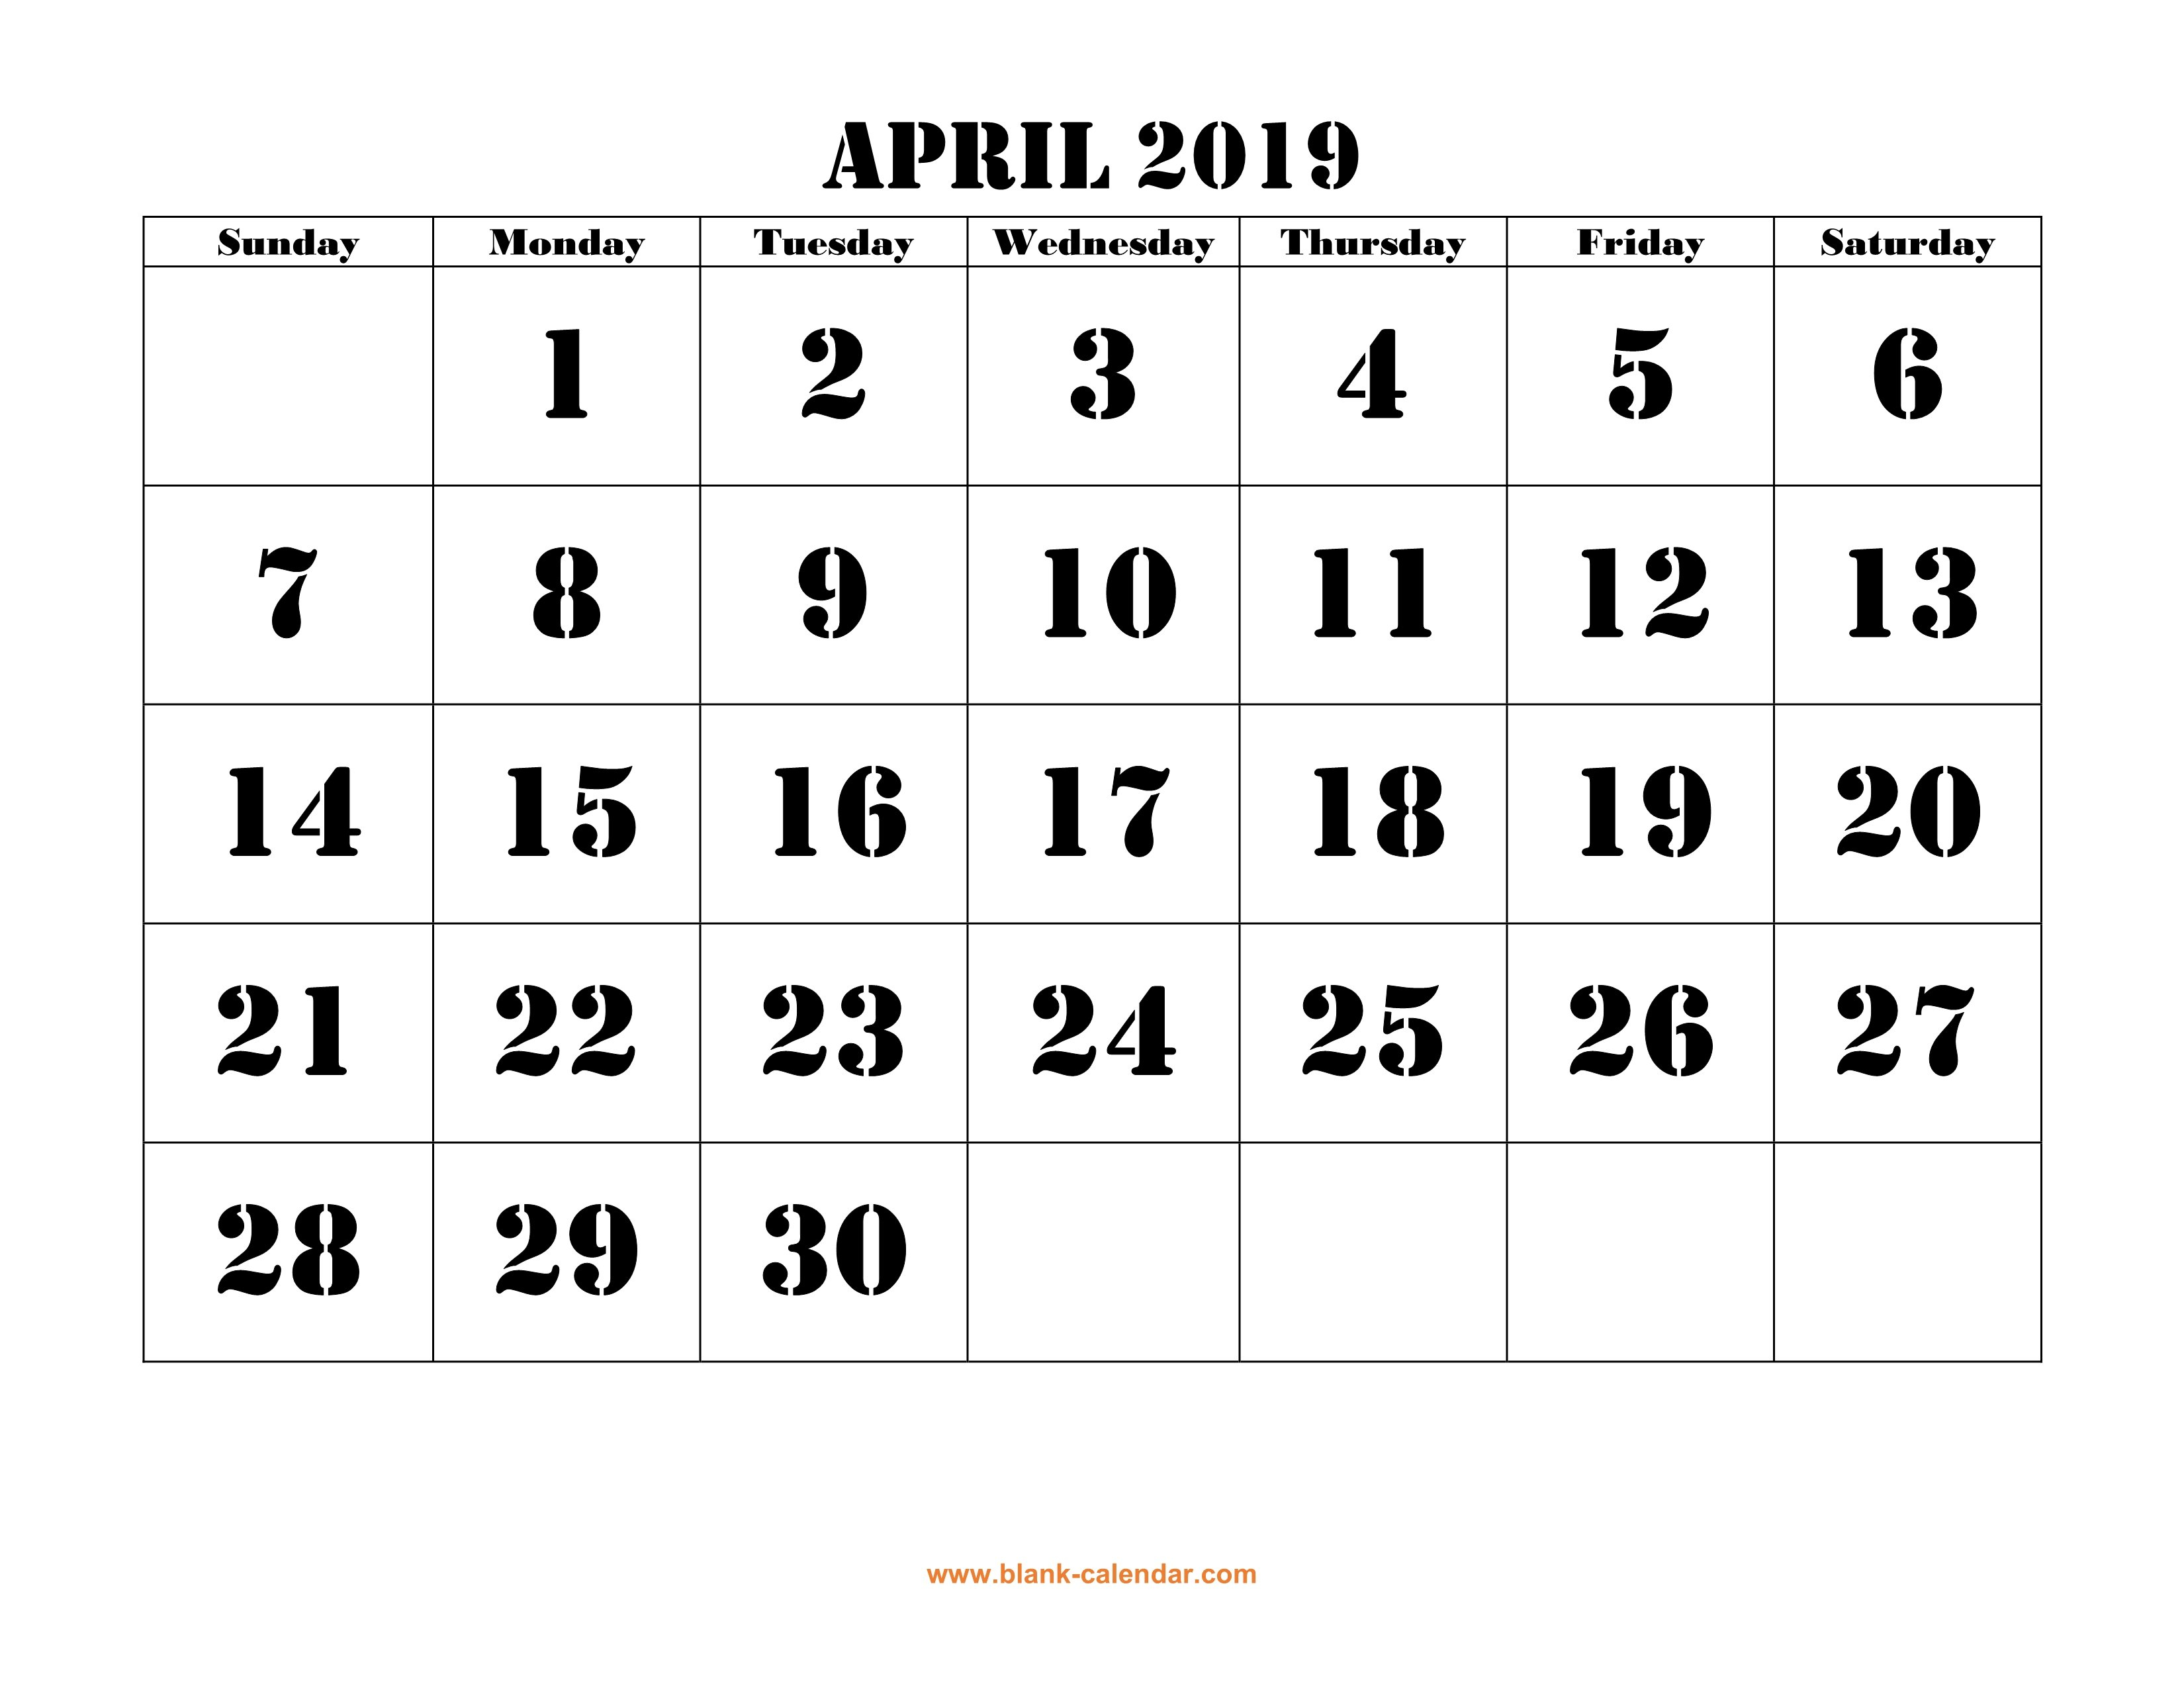 Free Download Printable April 2019 Calendar, Large Font Design April 7 2019 Calendar